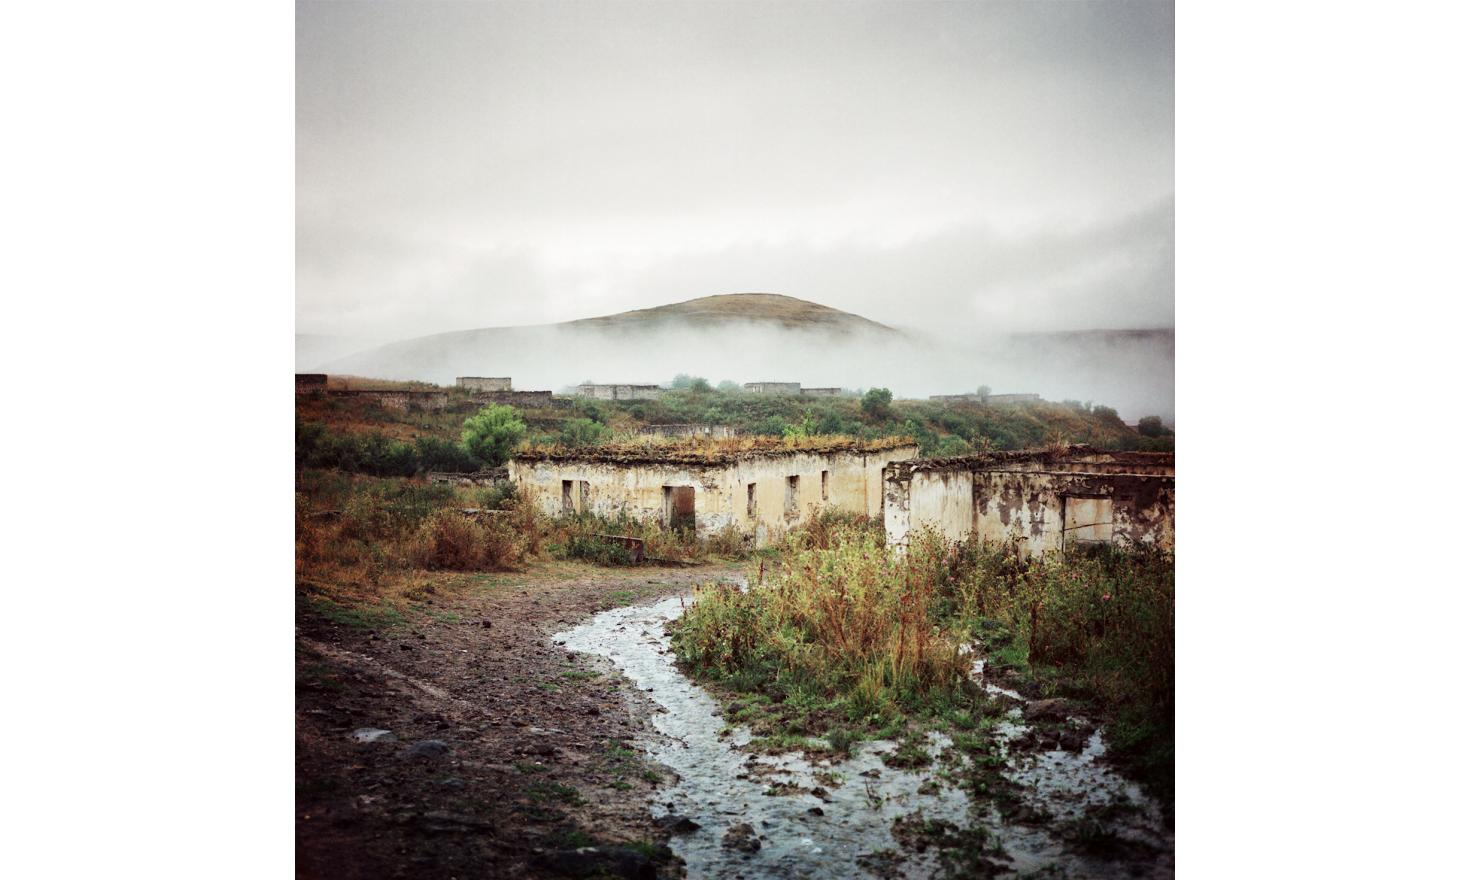 Hak, Kashatagh (Lachin) province. The village is one of the freed territories which was not landlocked to soviet Karabagh. Since then, the Armenians come to repopulate it. They found a non-occupied territory where the living conditions are very hard.